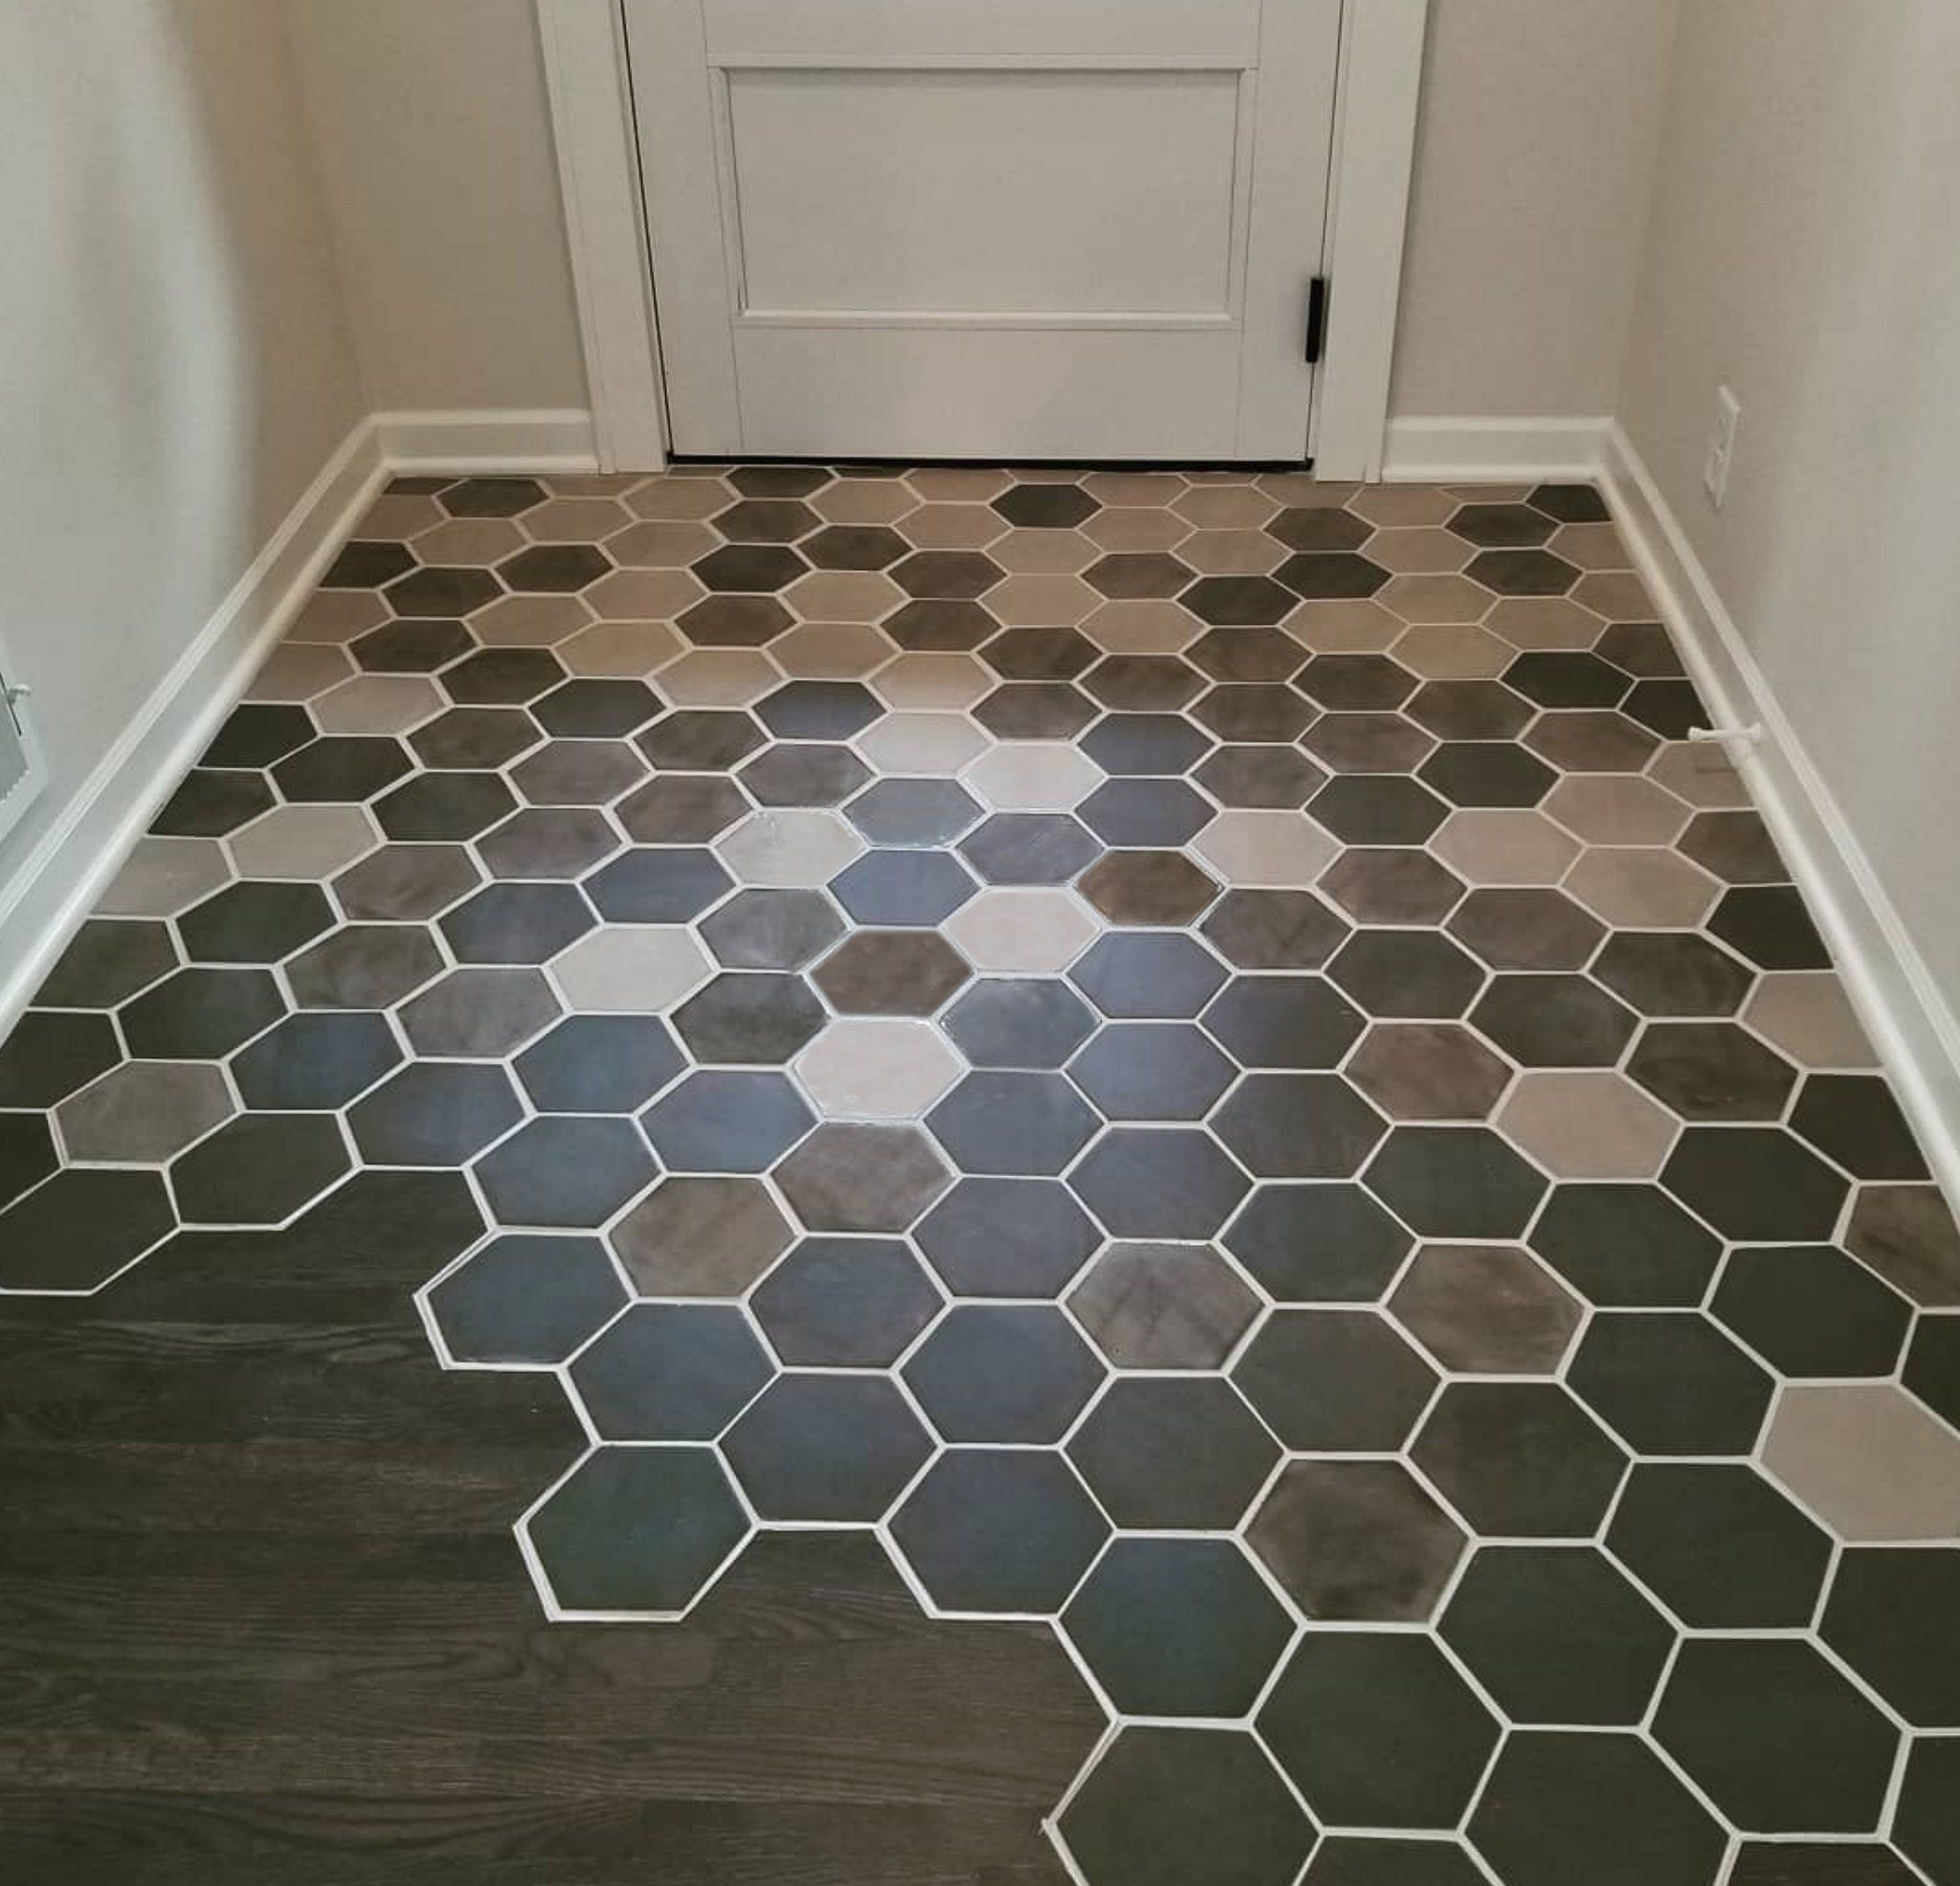 Howto floor transition from tile to wood in cool stuff